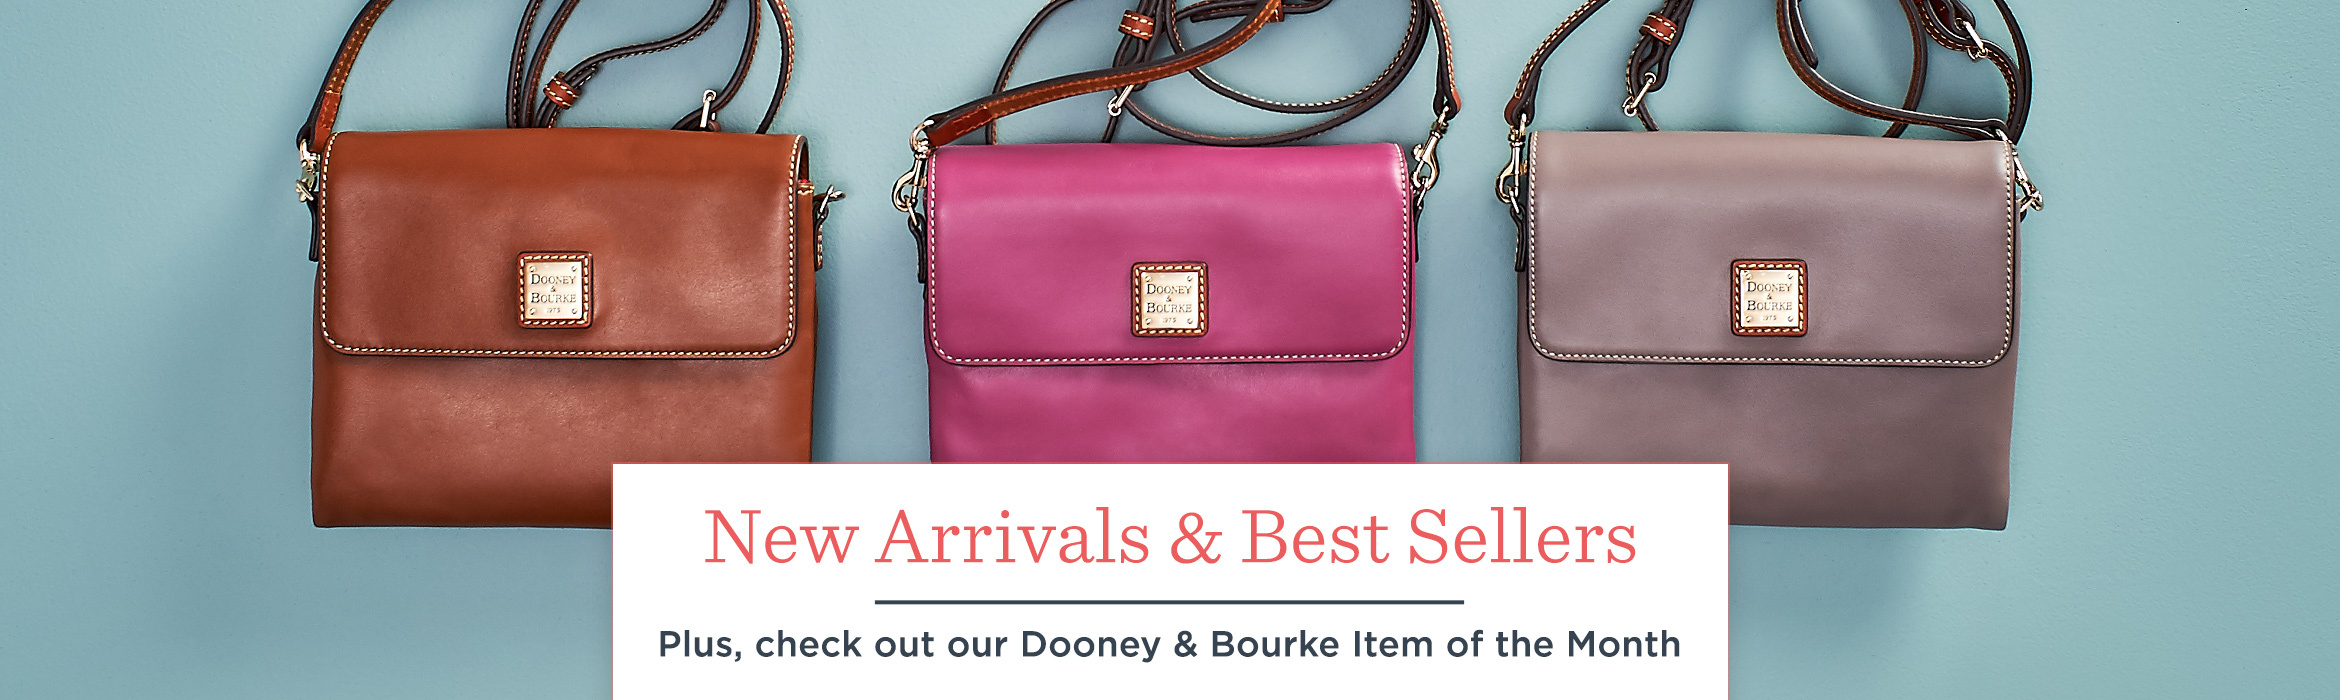 New Arrivals & Best Sellers. Plus, check out our Dooney & Bourke Item of the Month